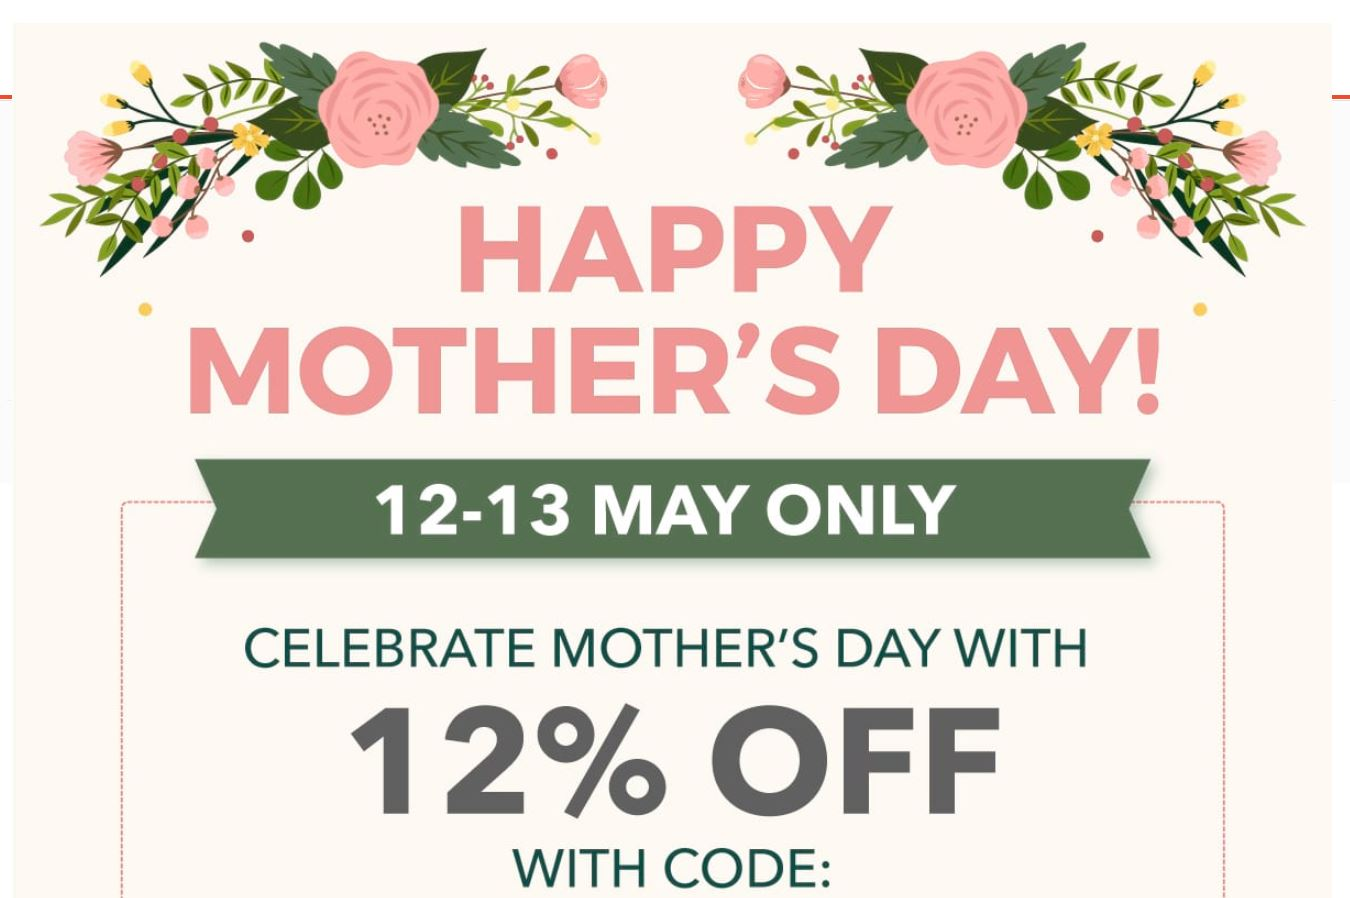 Shopee SG's Mother's Day